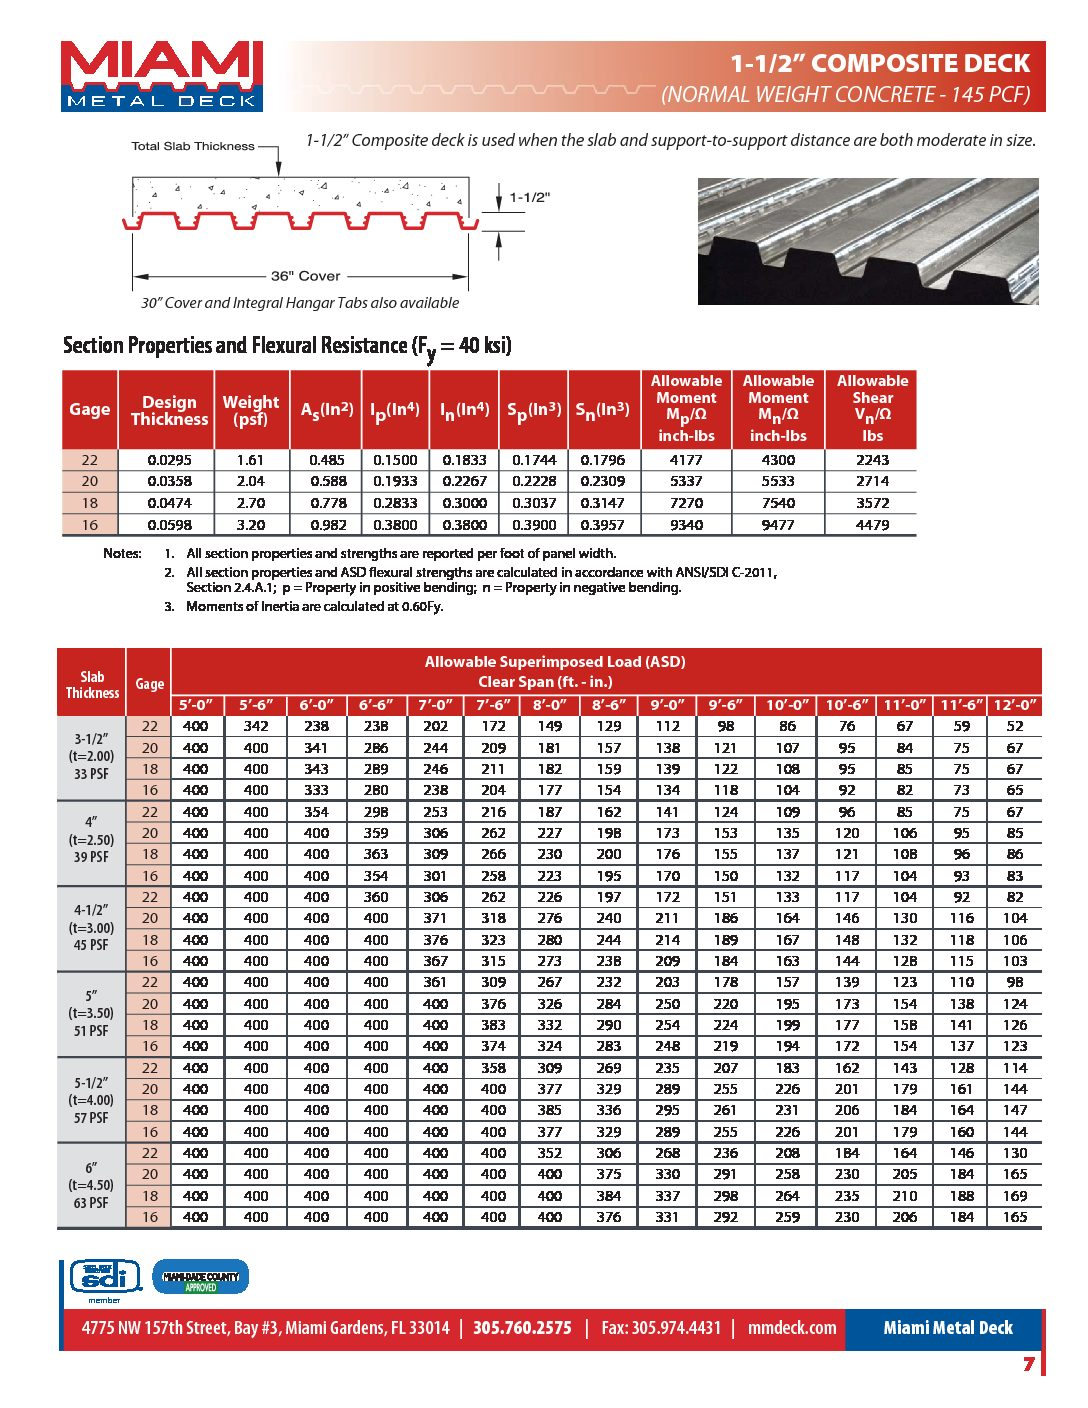 """1 1/2"""" Composite Deck Tables and Load-Span Resources Guide"""